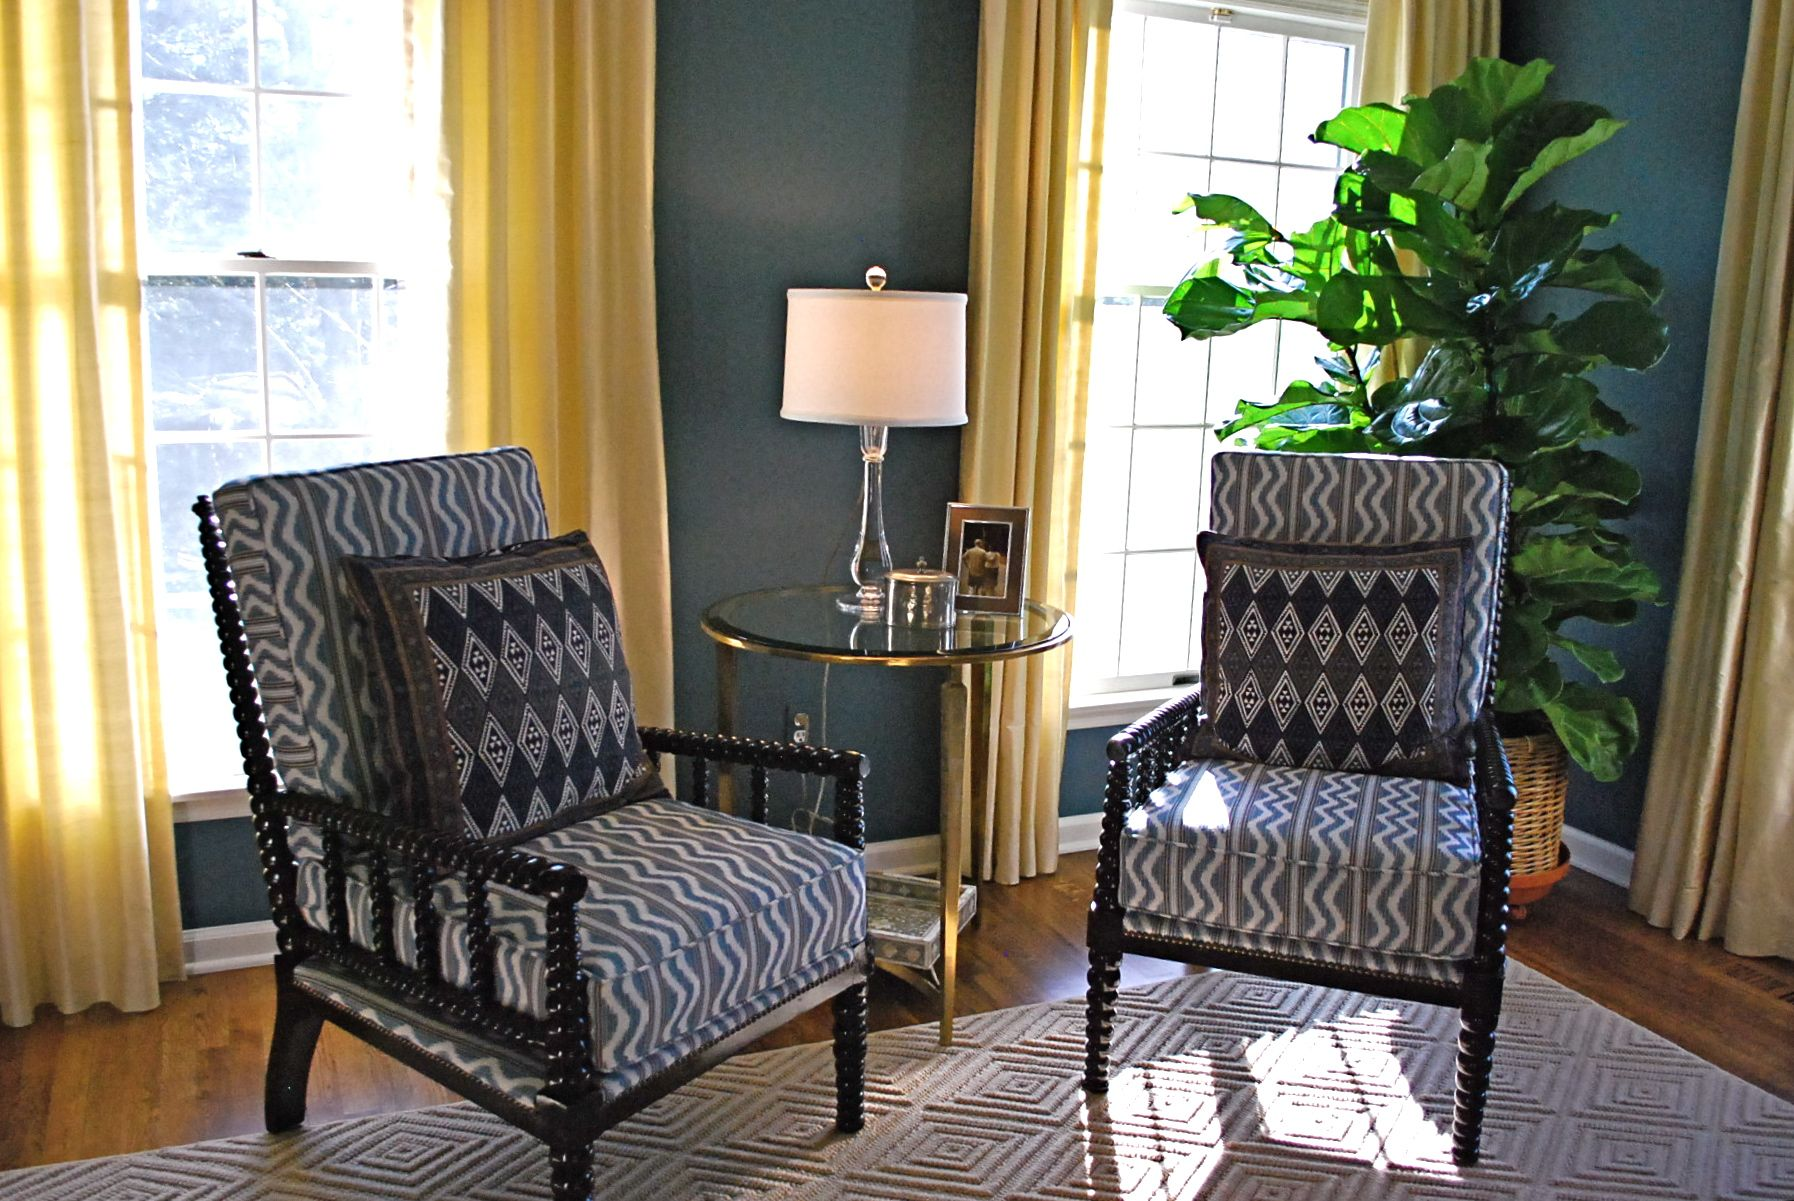 Indigo walls bobbin chairs with ikat fabric and African cloth